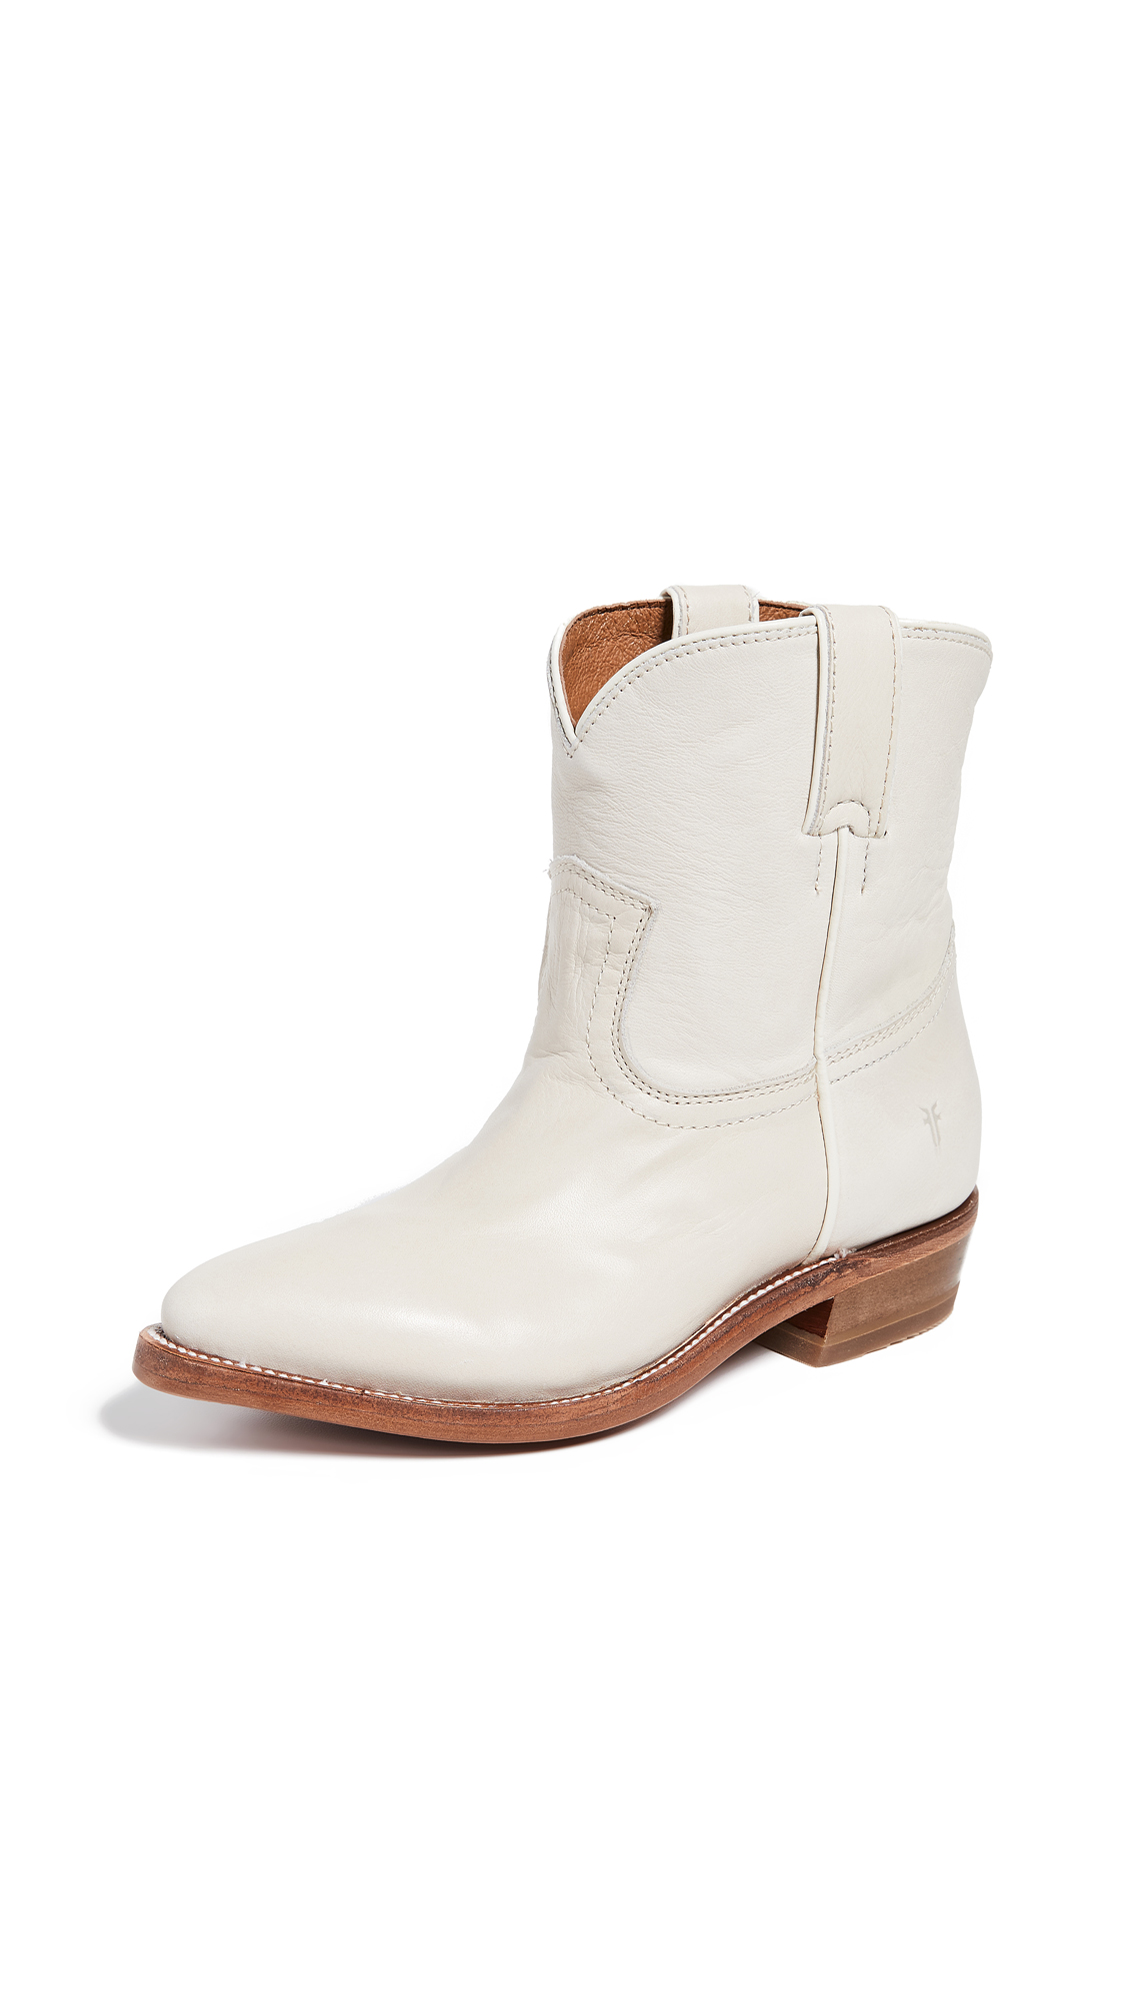 Frye Billy Short Booties - Off White